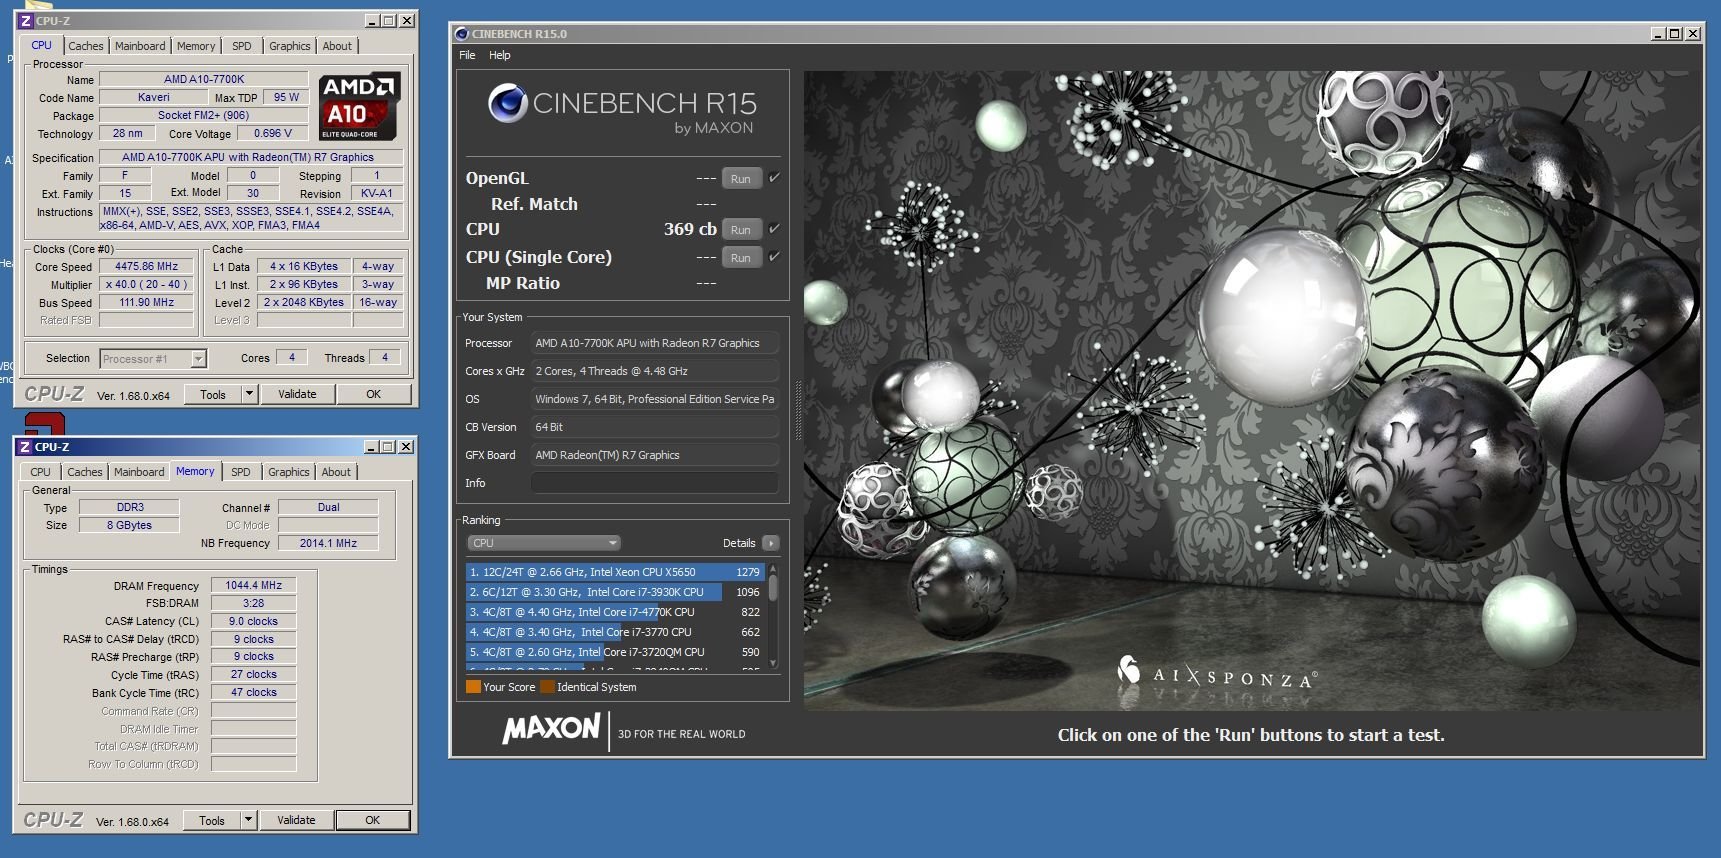 Amd Athlon 5350 With Radeon R3 cinebench r15 amd results - new fun for next months - page 6